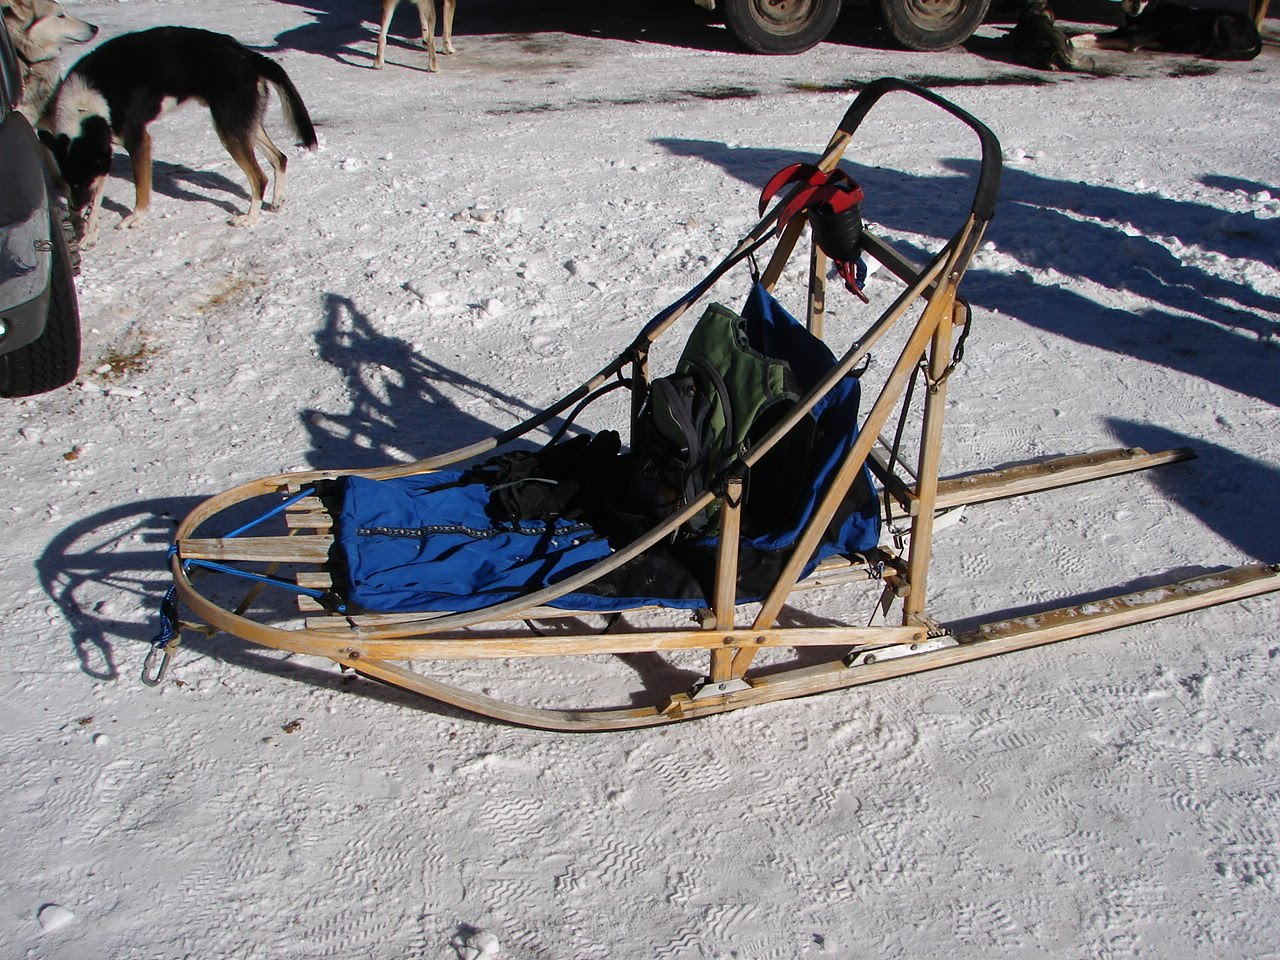 North of Andorra: Dog Sled Races on Grand Mesa